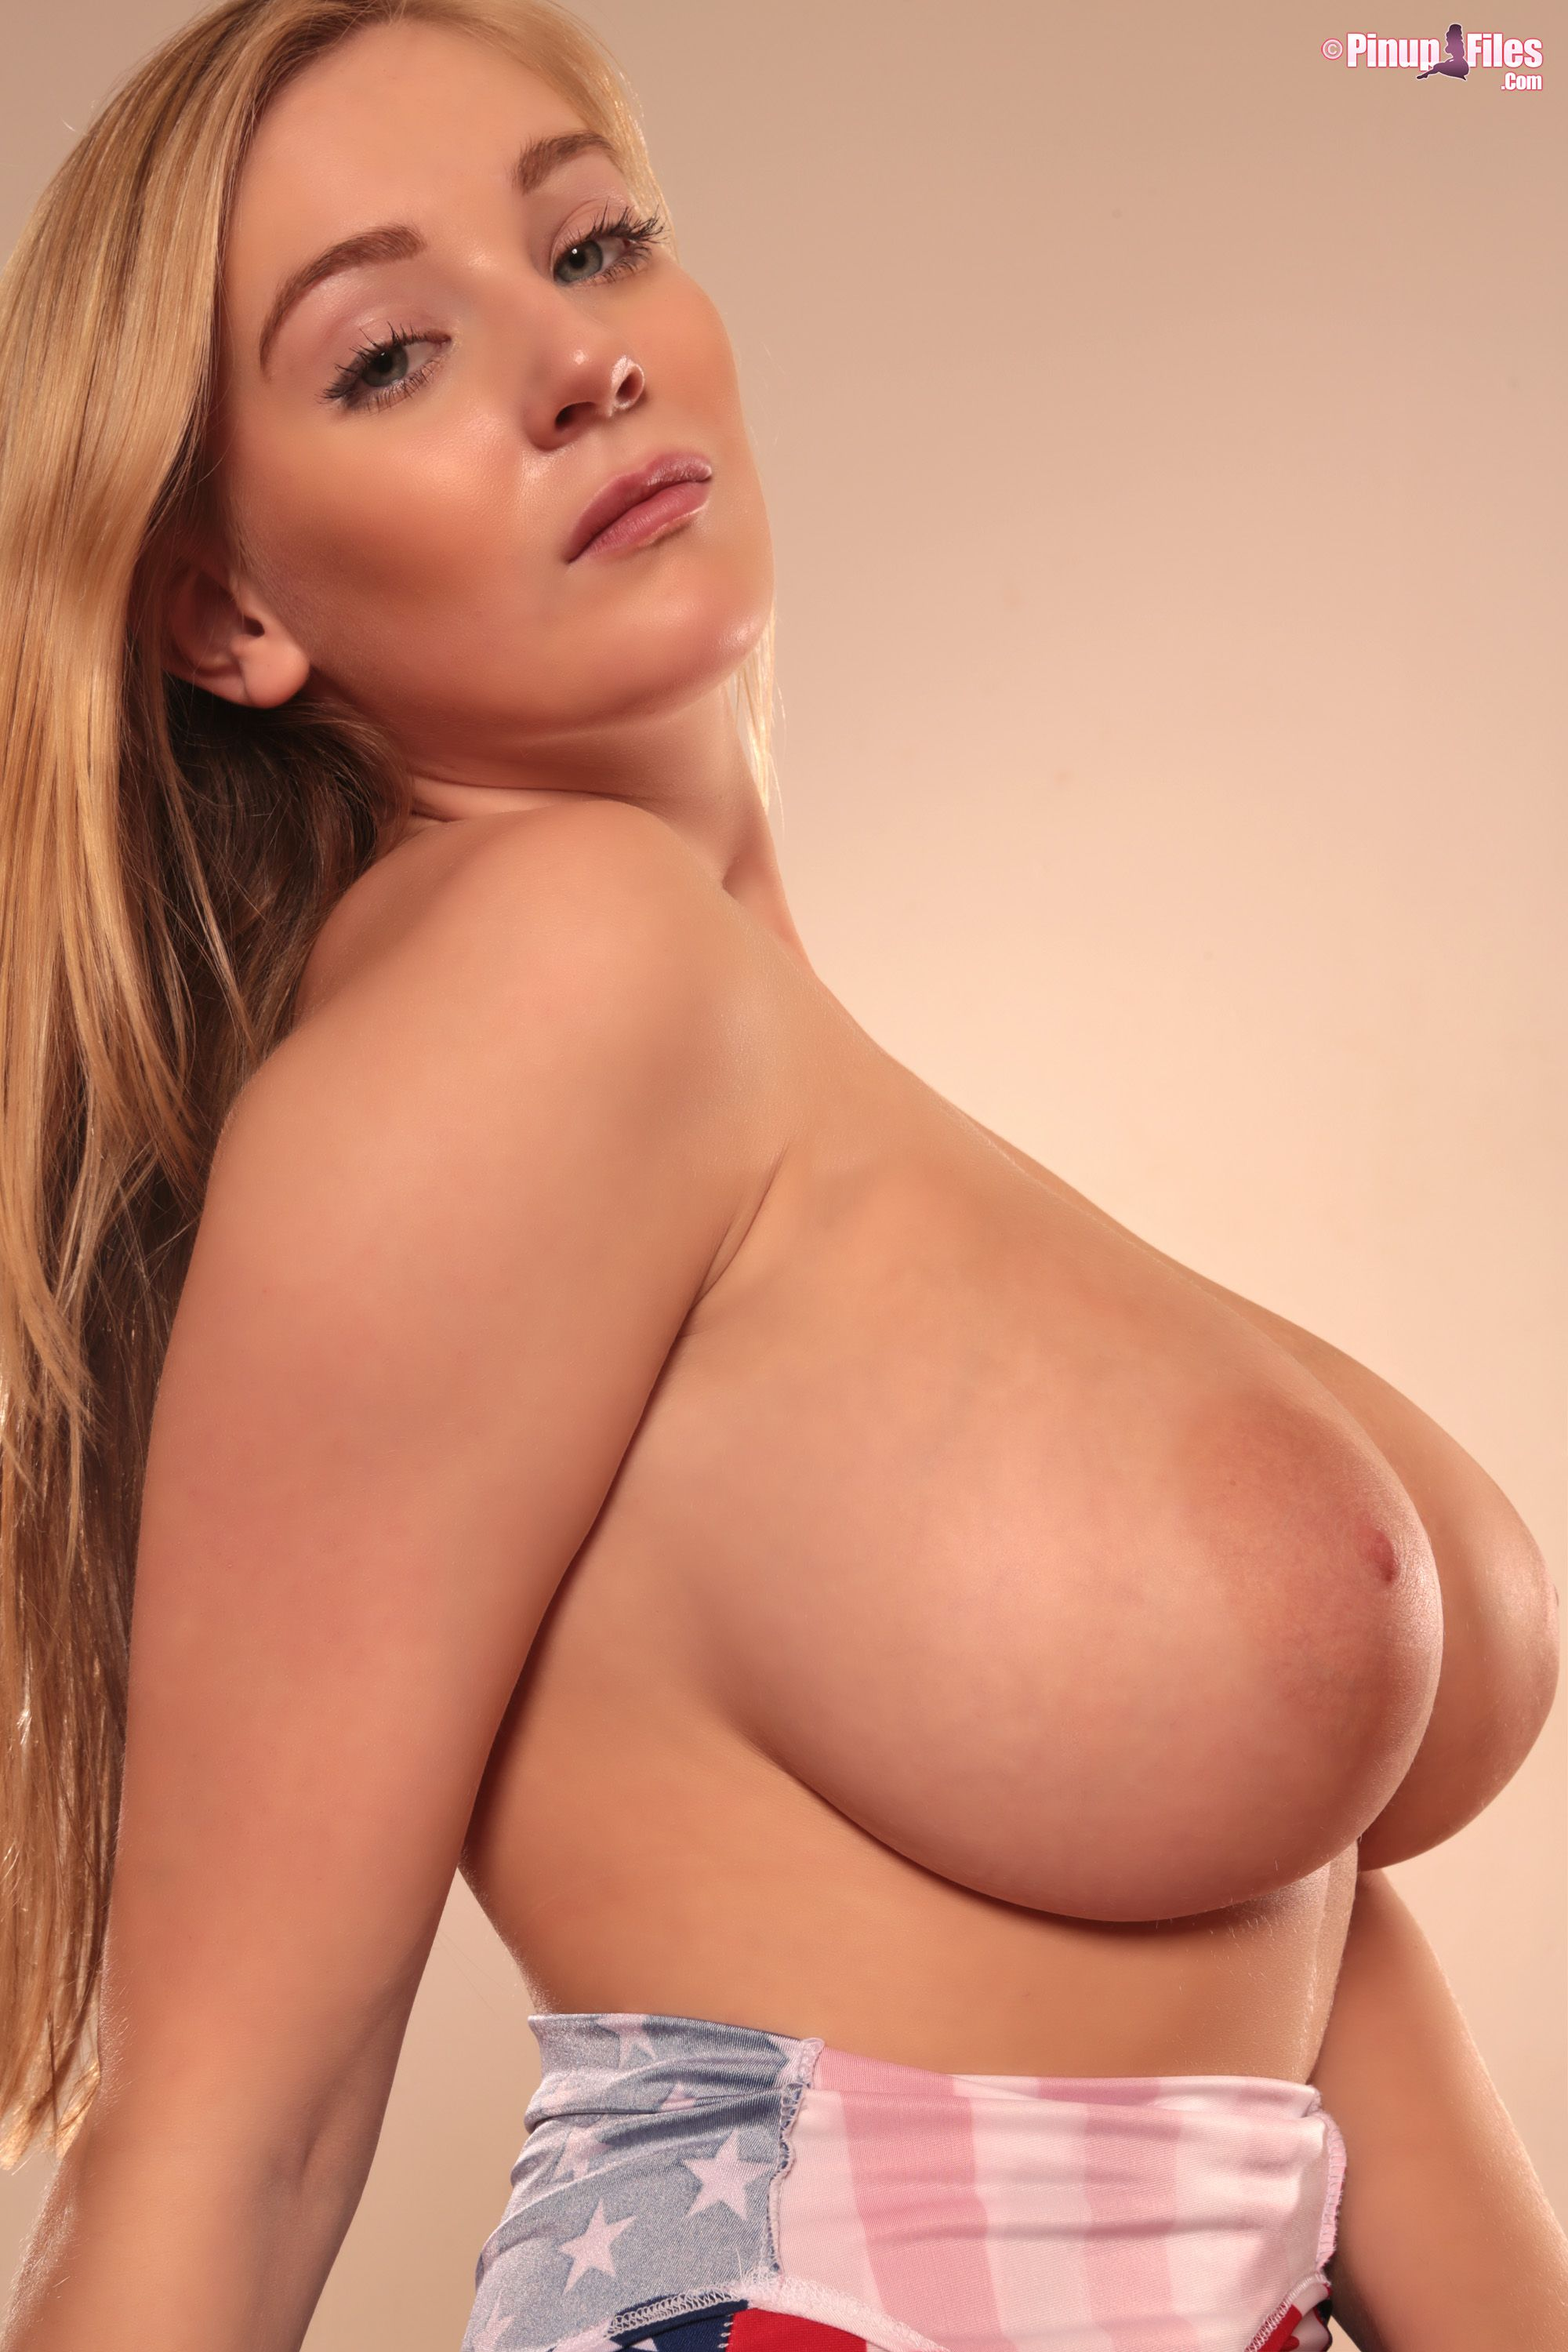 32 ee boobs nude